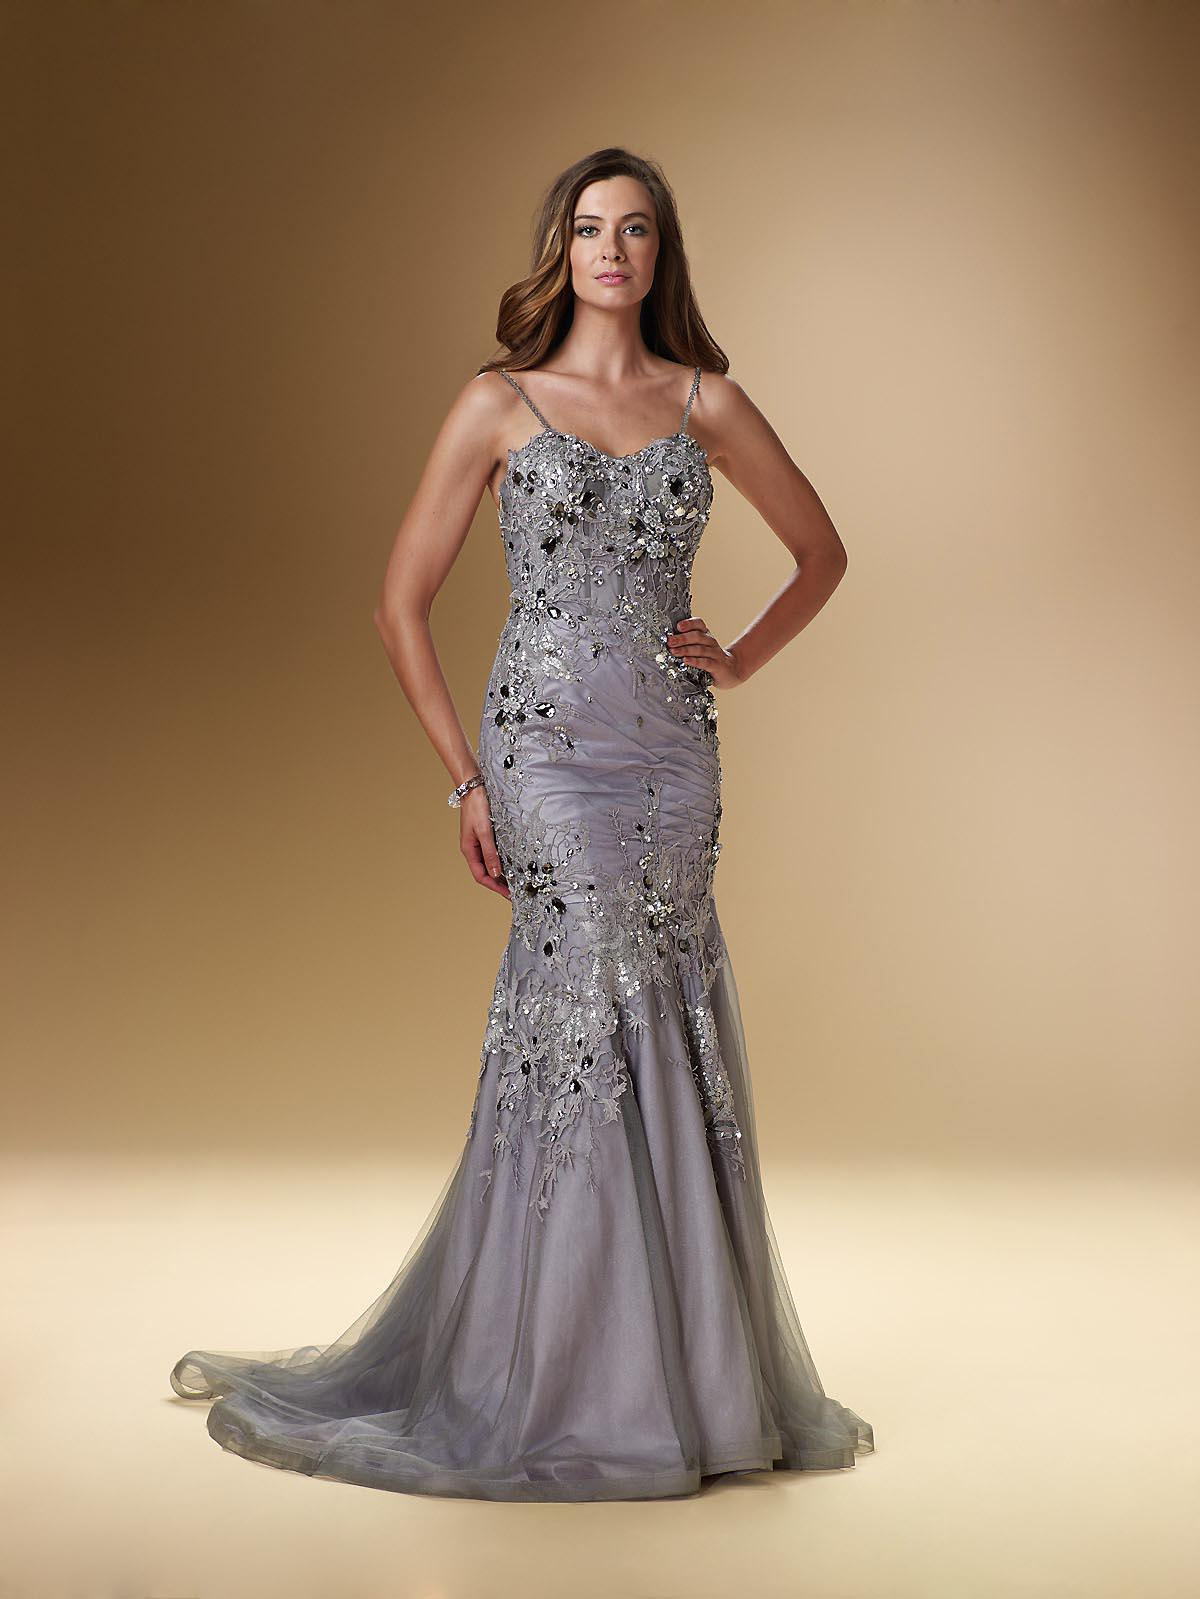 Collection Formal Dress For Mother Of The Bride Pictures - Kcraft